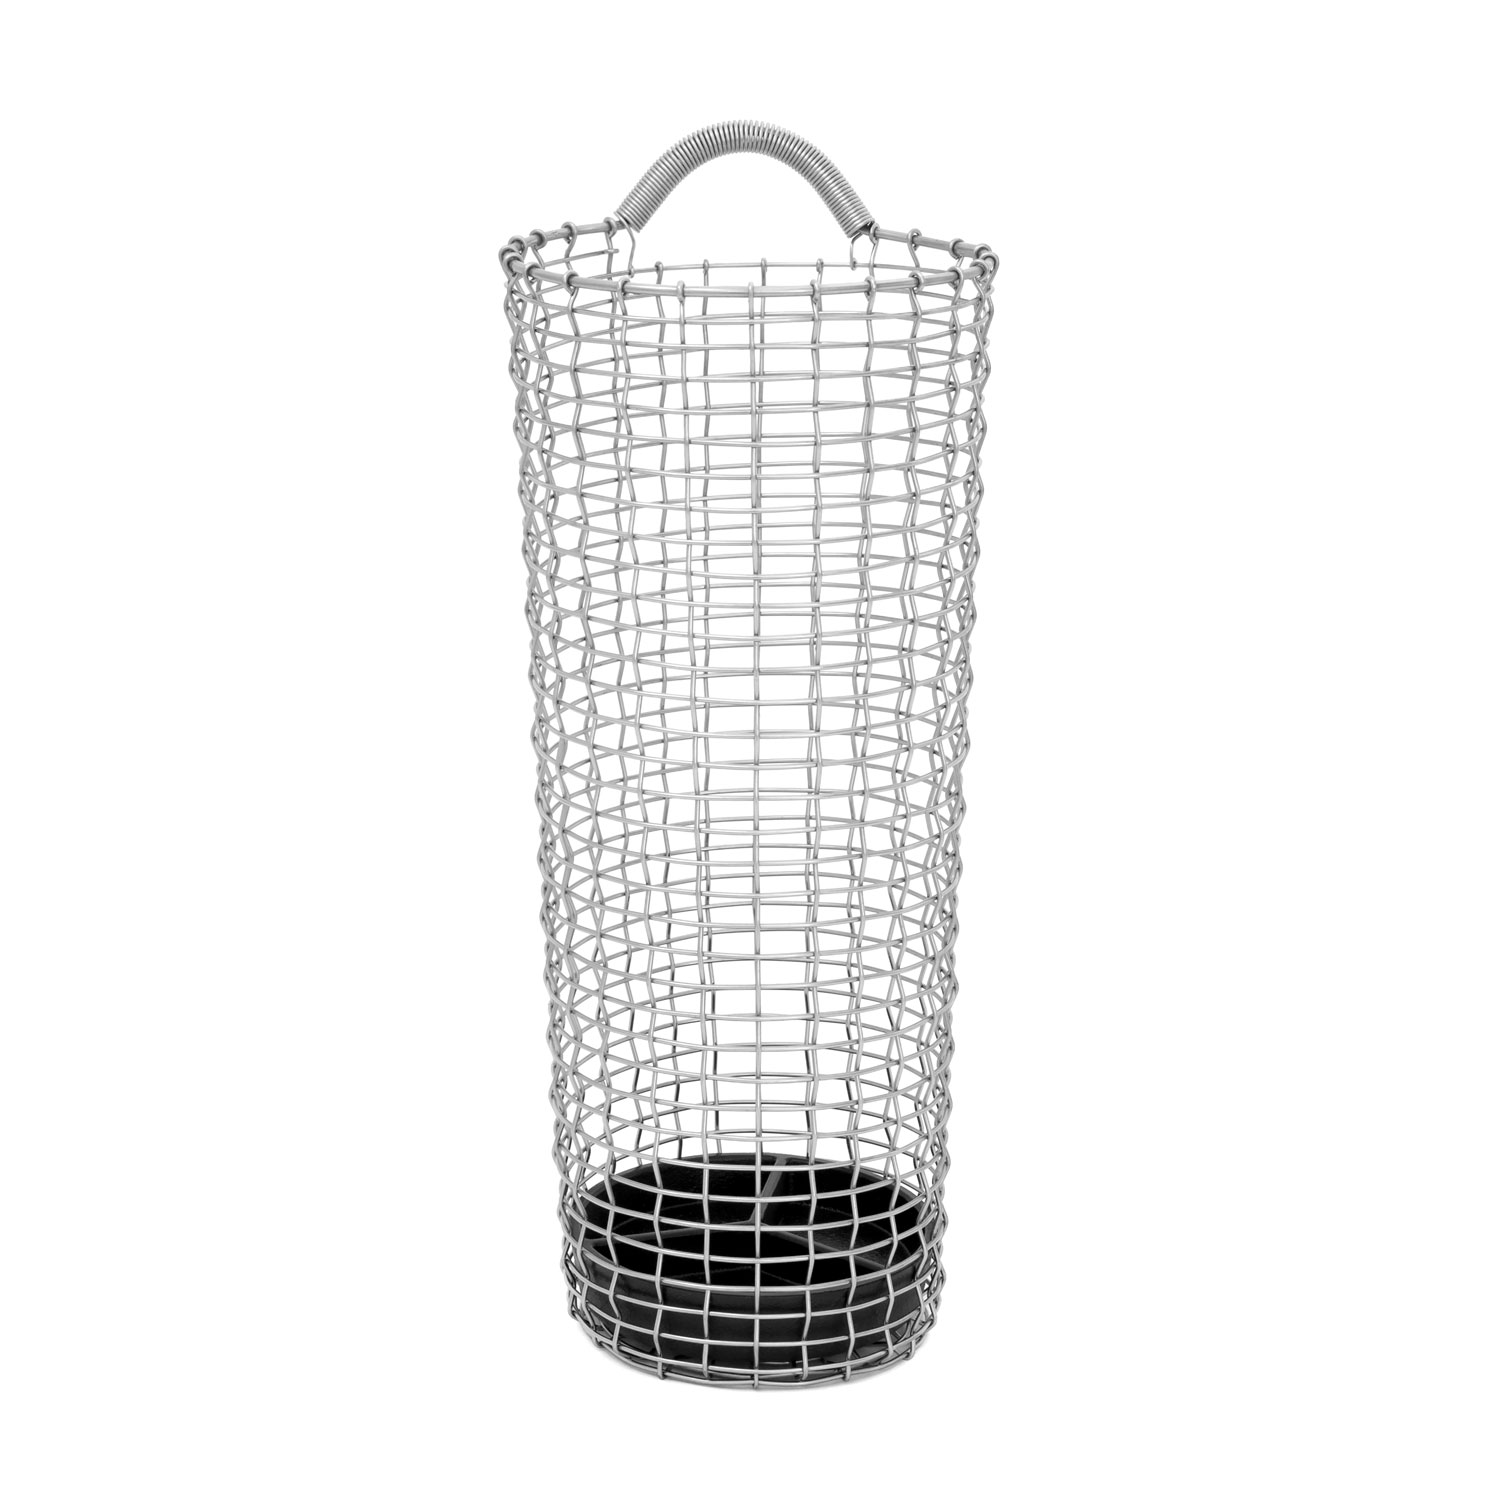 Umbrella Bin, Stainless Steel, Korbo